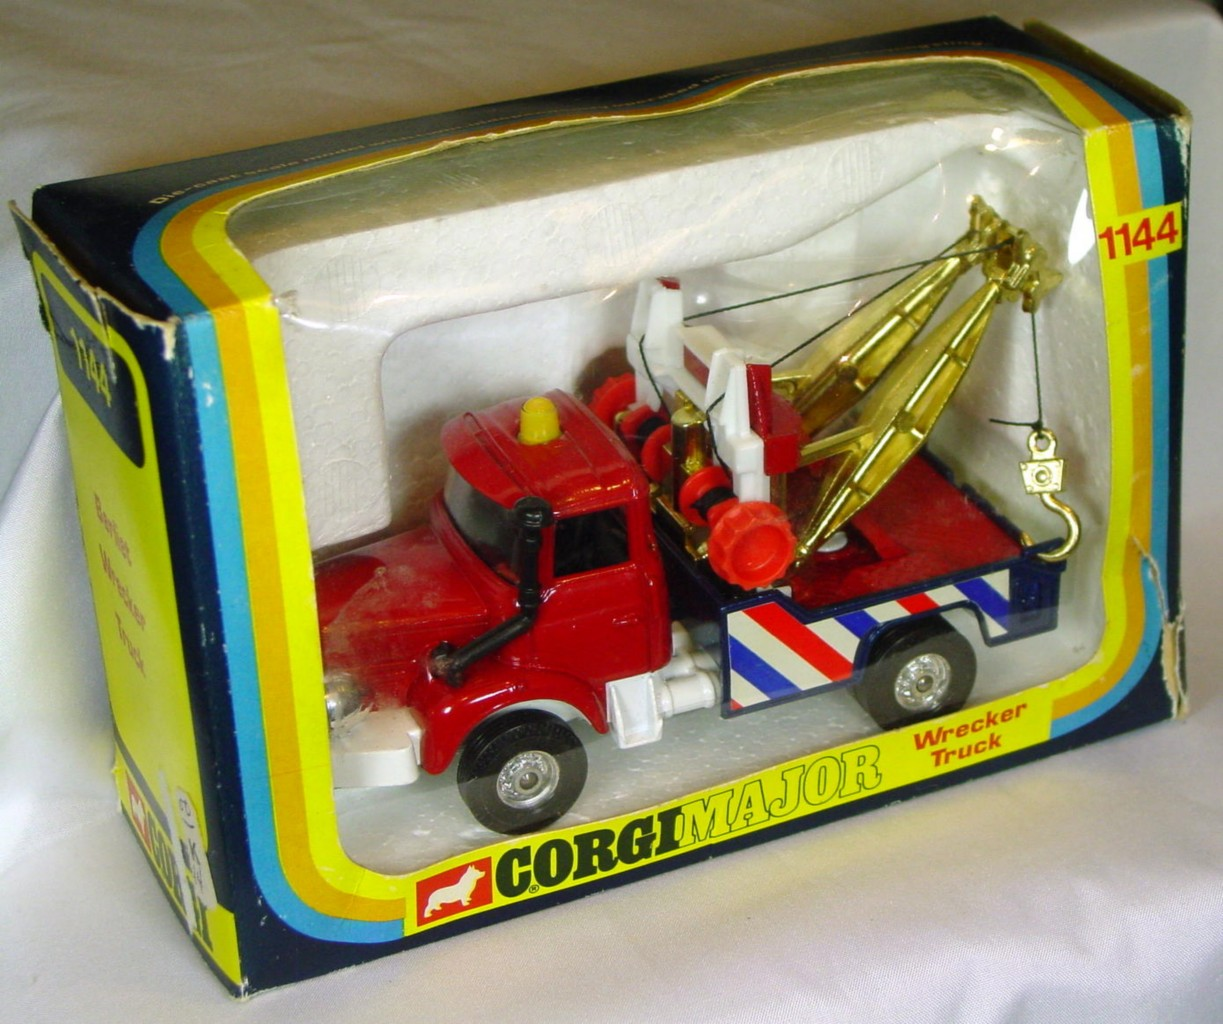 Corgi 1144 - Berliet Wrecker Red and white and gold C8.5 window box